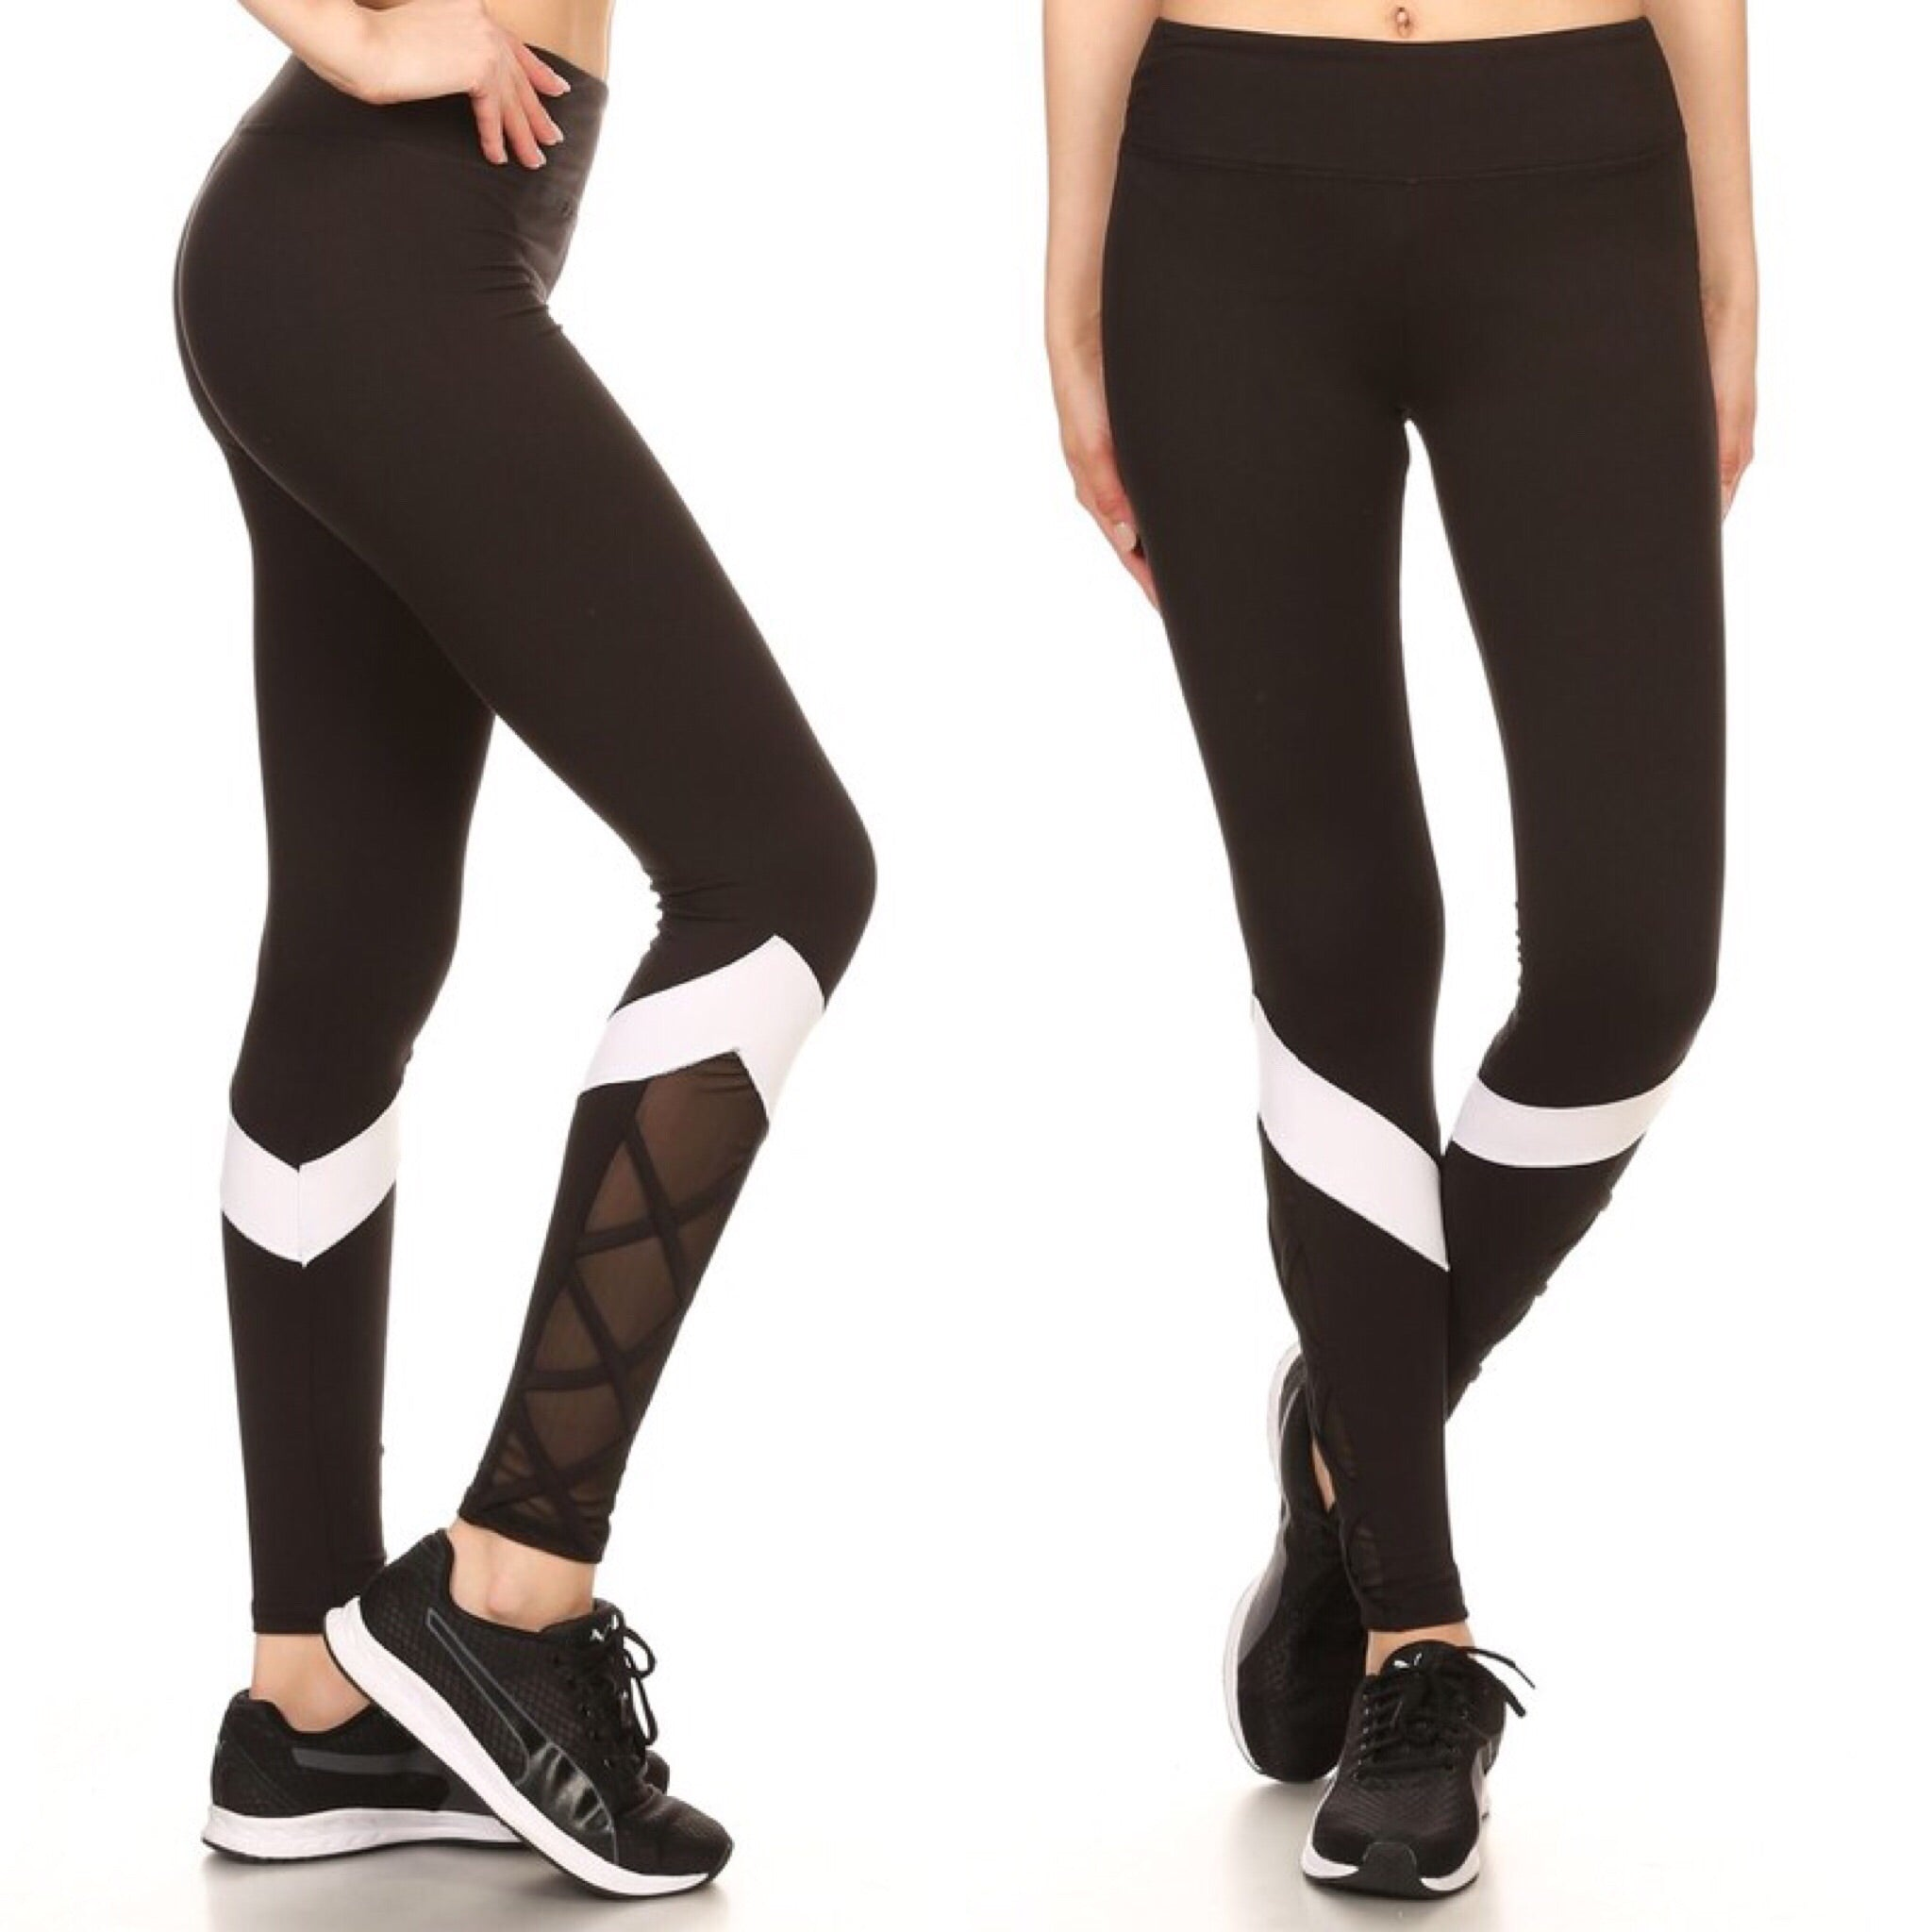 700909 FLFF - Black ComfySoft Stretchable Crisscross Mesh Athletic Leggings with White Stripe